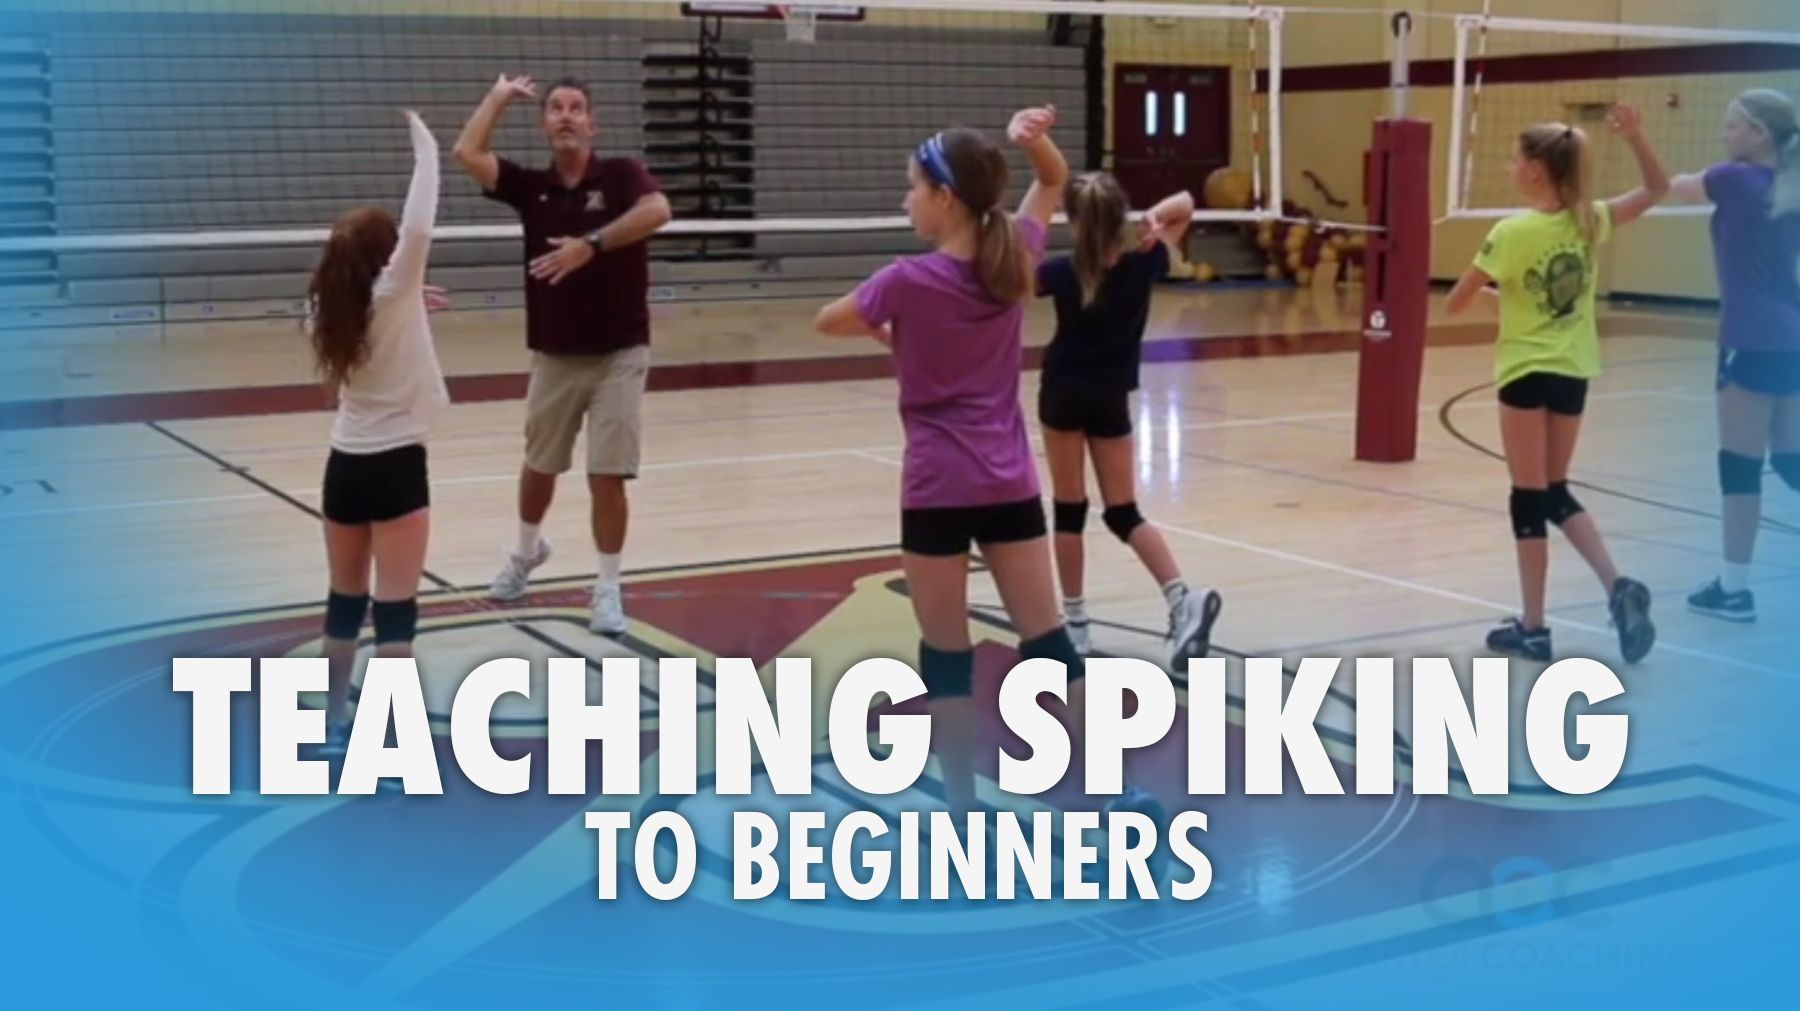 Teaching Spiking To Beginners Intermediates Volleyball Skills Coaching Volleyball Volleyball Drills